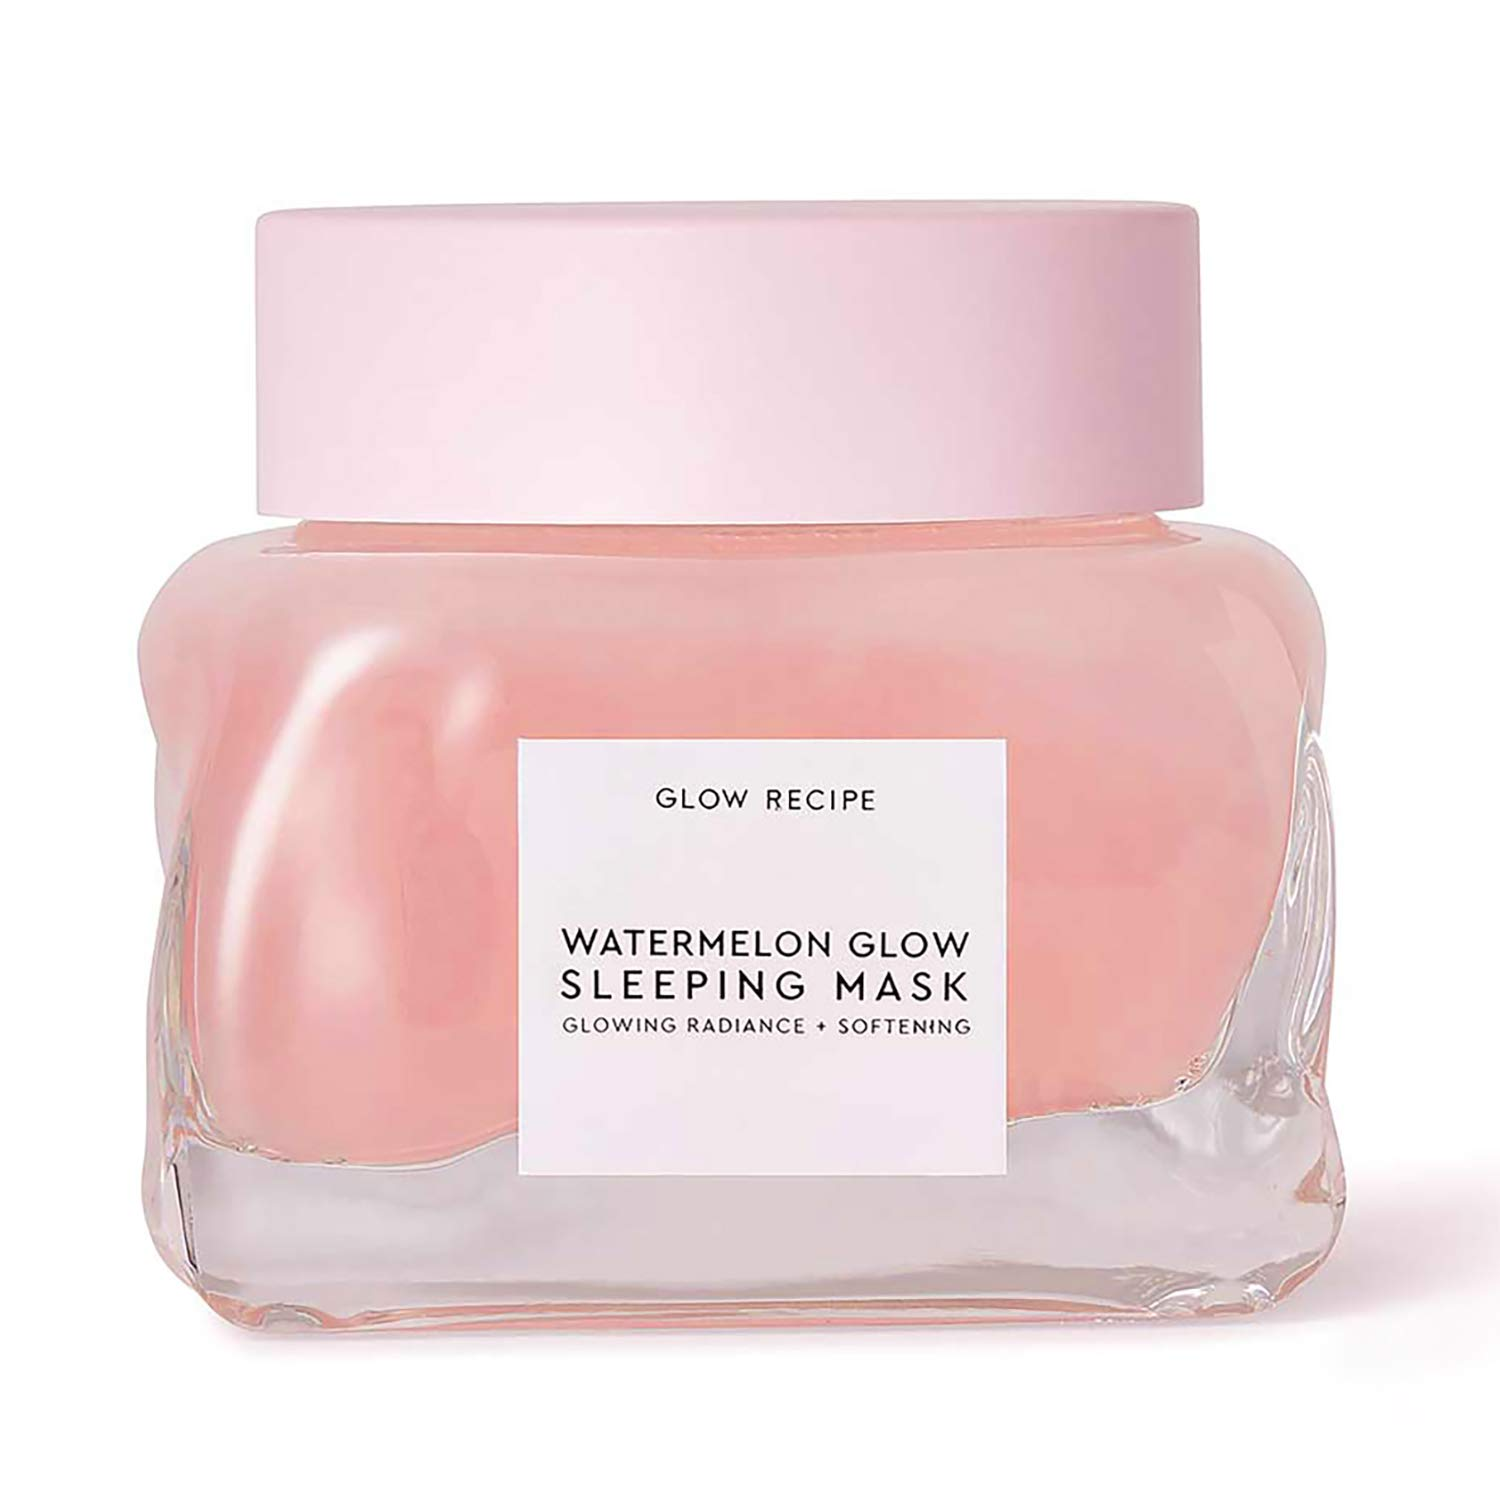 Glow Recipe Watermelon Glow Sleeping Mask - Exfoliating, Anti-Aging + Brightening Overnight Face Mask with AHA, Hyaluronic Acid + Pumpkin Seed Extract